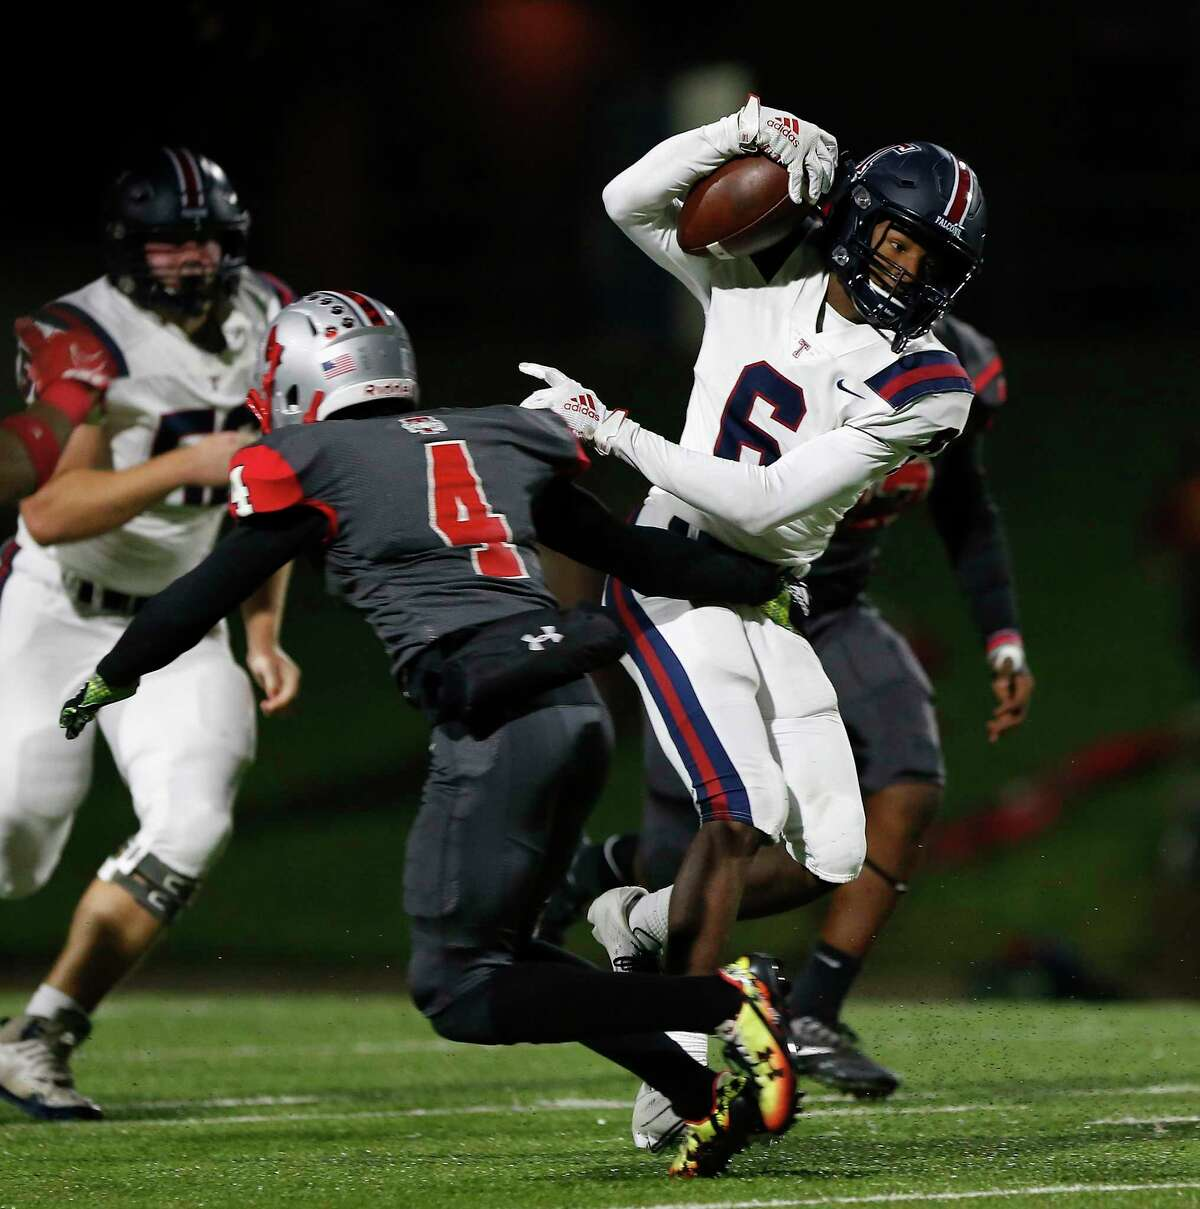 Tompkins Falcons Marquis Shoulders (6) breaks a tackle by Travis Tigers cornerback Jahvon O'neal (4) and rushes for a touchdown during the first half of the high school football playoff game between the Tompkins Falcons and the Travis Tigers at Mercer Stadium in Sugar Land, TX on Thursday, November 14, 2019. The Falcons lead the Tigers 21-14 at halftime.